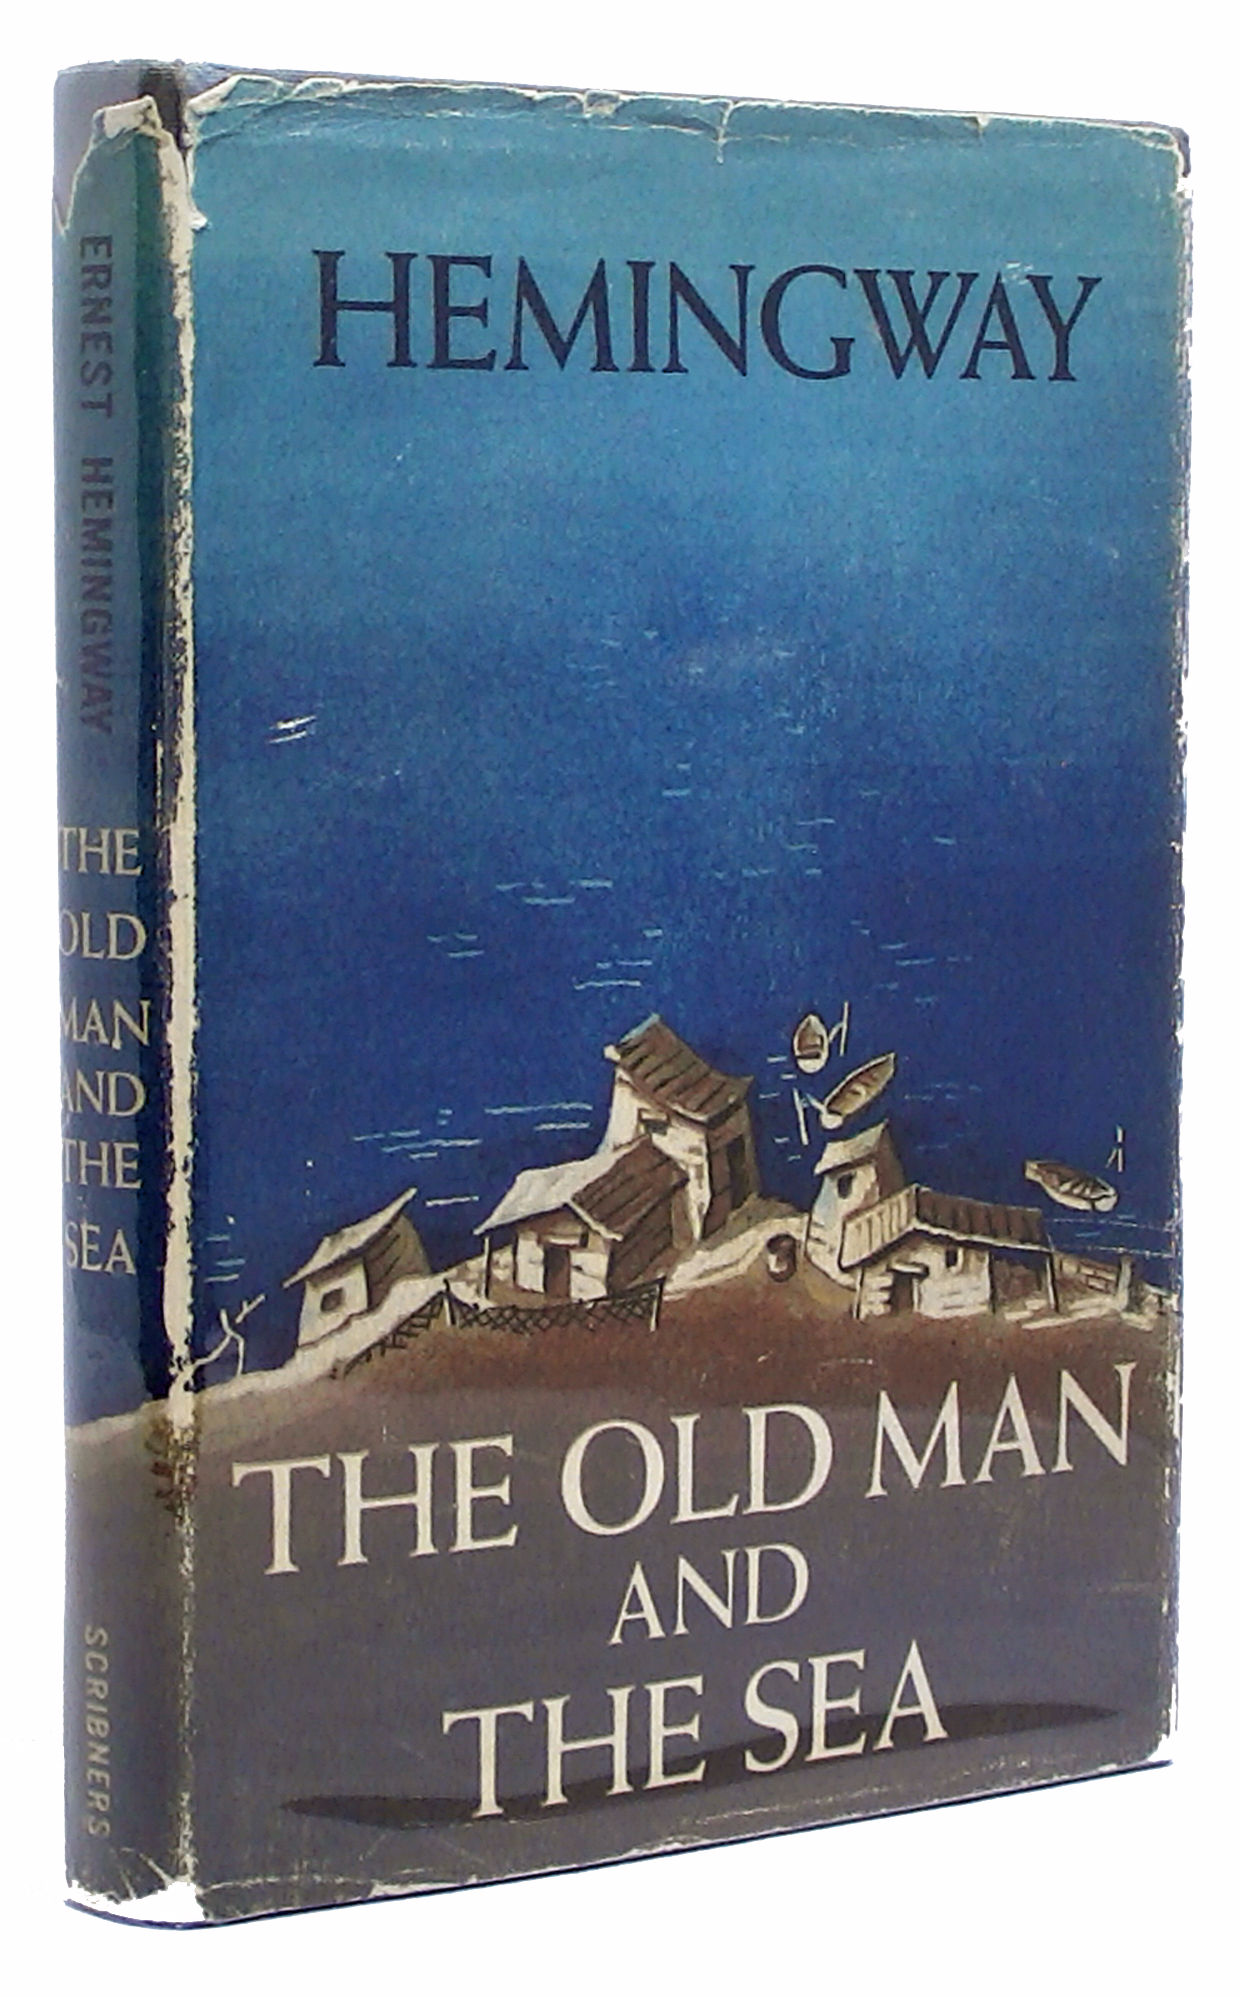 an in depth review of ernest hemingways the old man and the sea The old man and the sea, published in 1952 and often considered  home  academic book reviews the old man and the sea – ernest hemingway  his  greatest challenges, alone in the deep waters of the gulf stream.